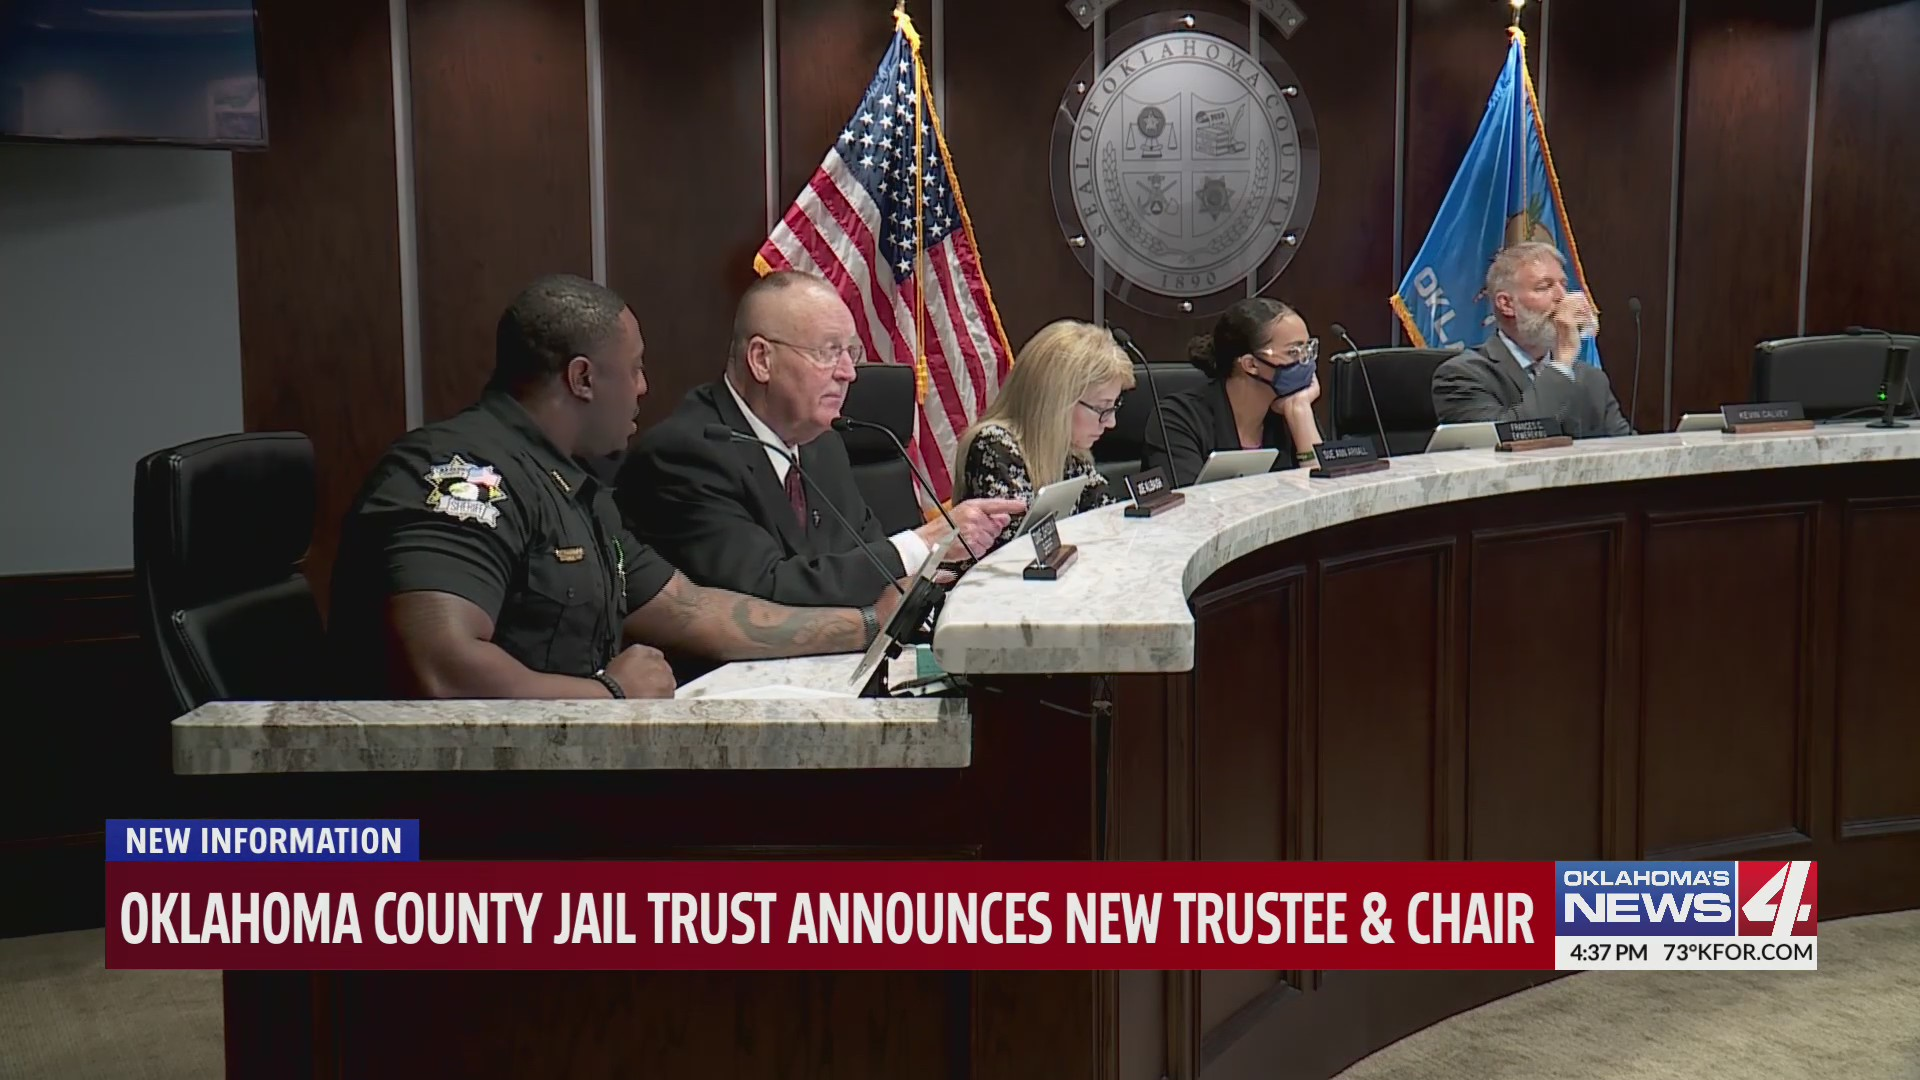 Oklahoma County Jail Trust votes in new Chair, Vice Chair, and trustee